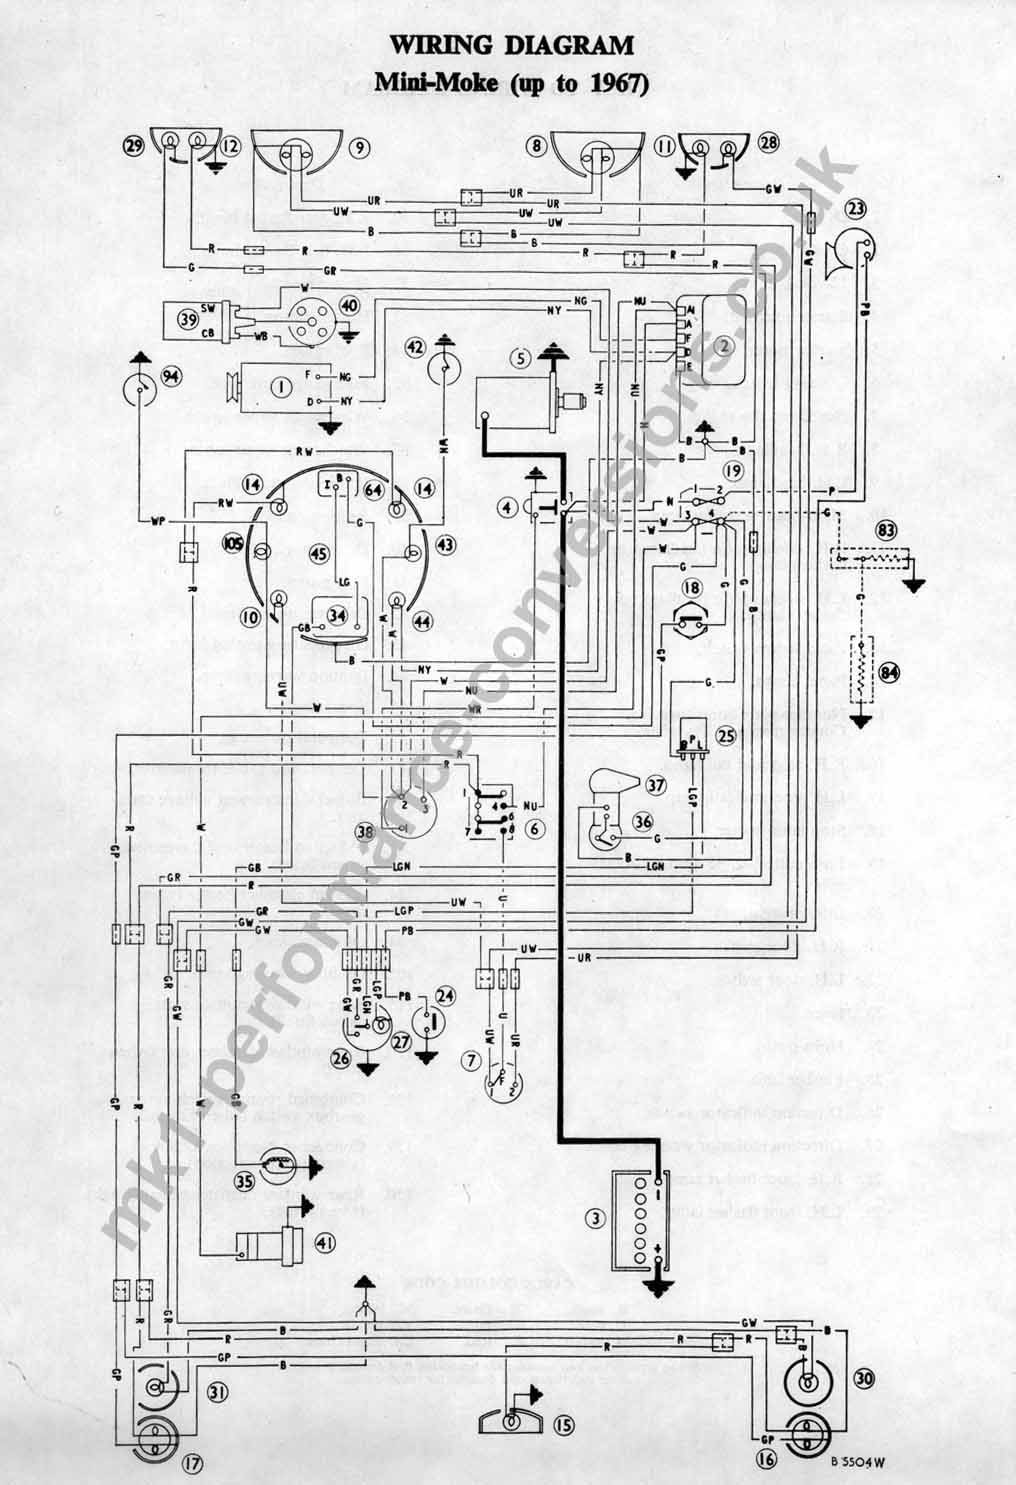 mk1_moke_wiring classic mini austin 10/4 wiring diagram at fashall.co